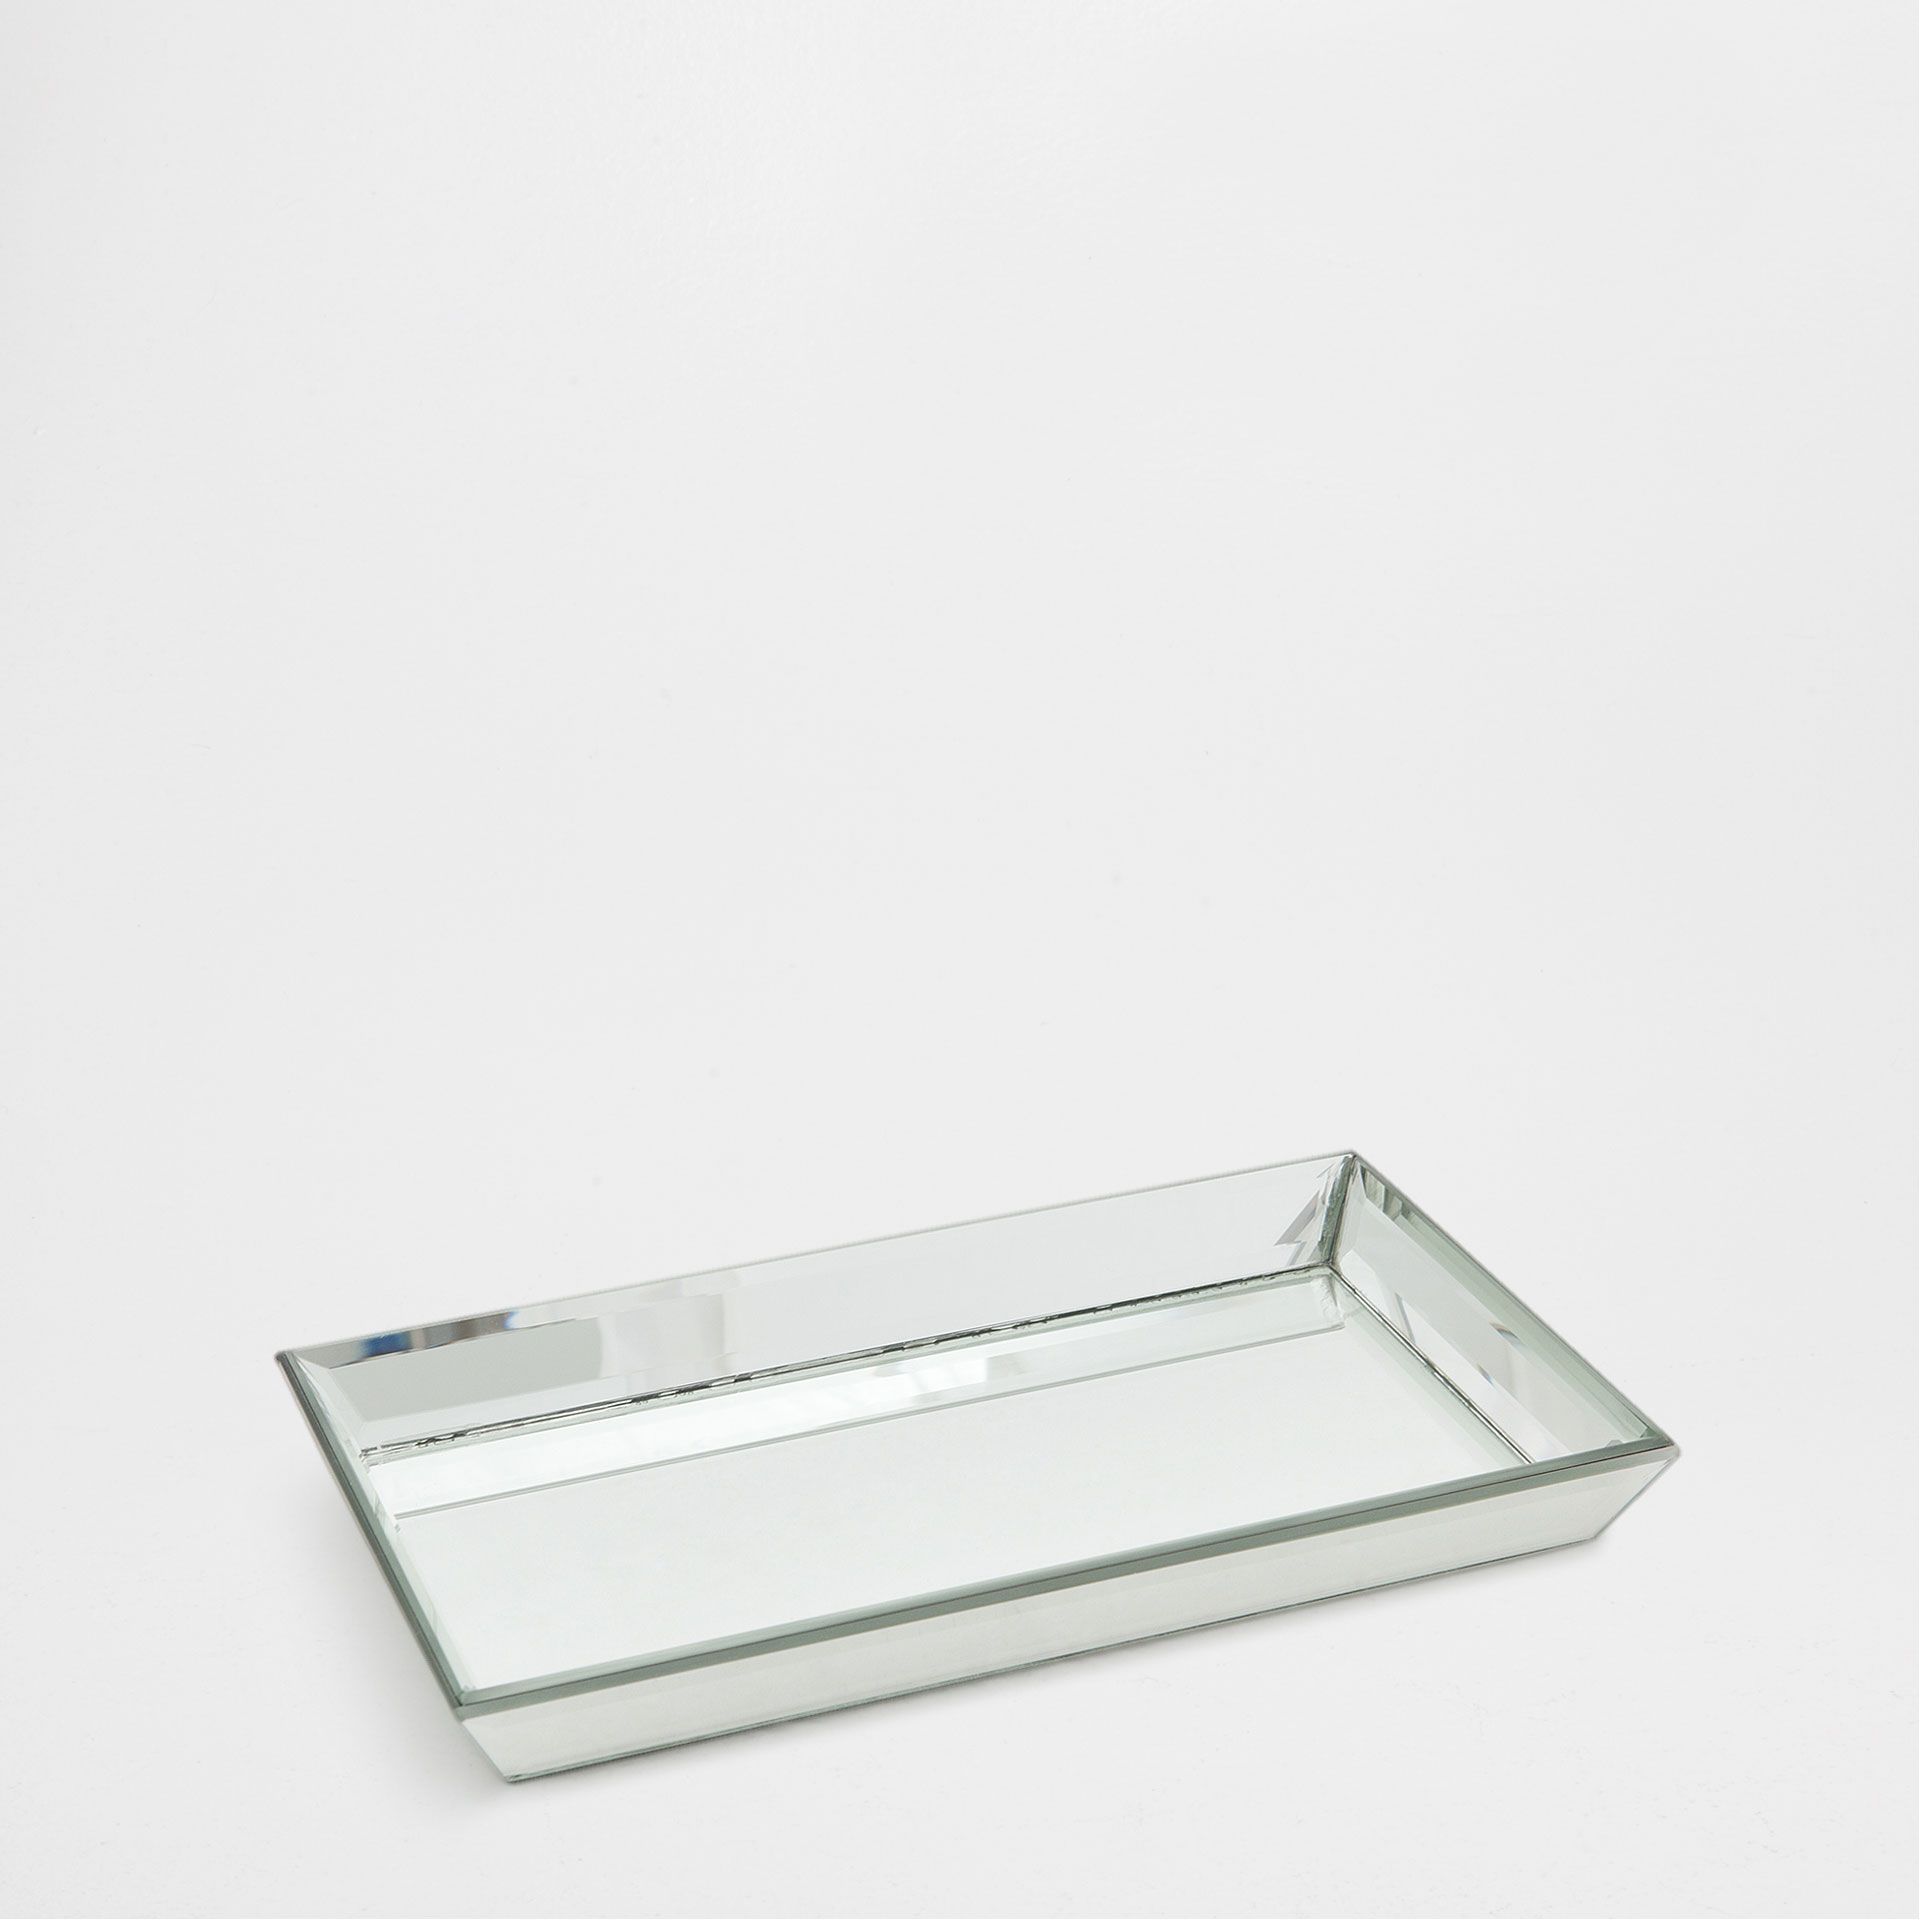 Decorative Mirror Tray Delectable Decorative Mirrored Tray    ✭ Things  Pinterest  Trays And Decorating Design